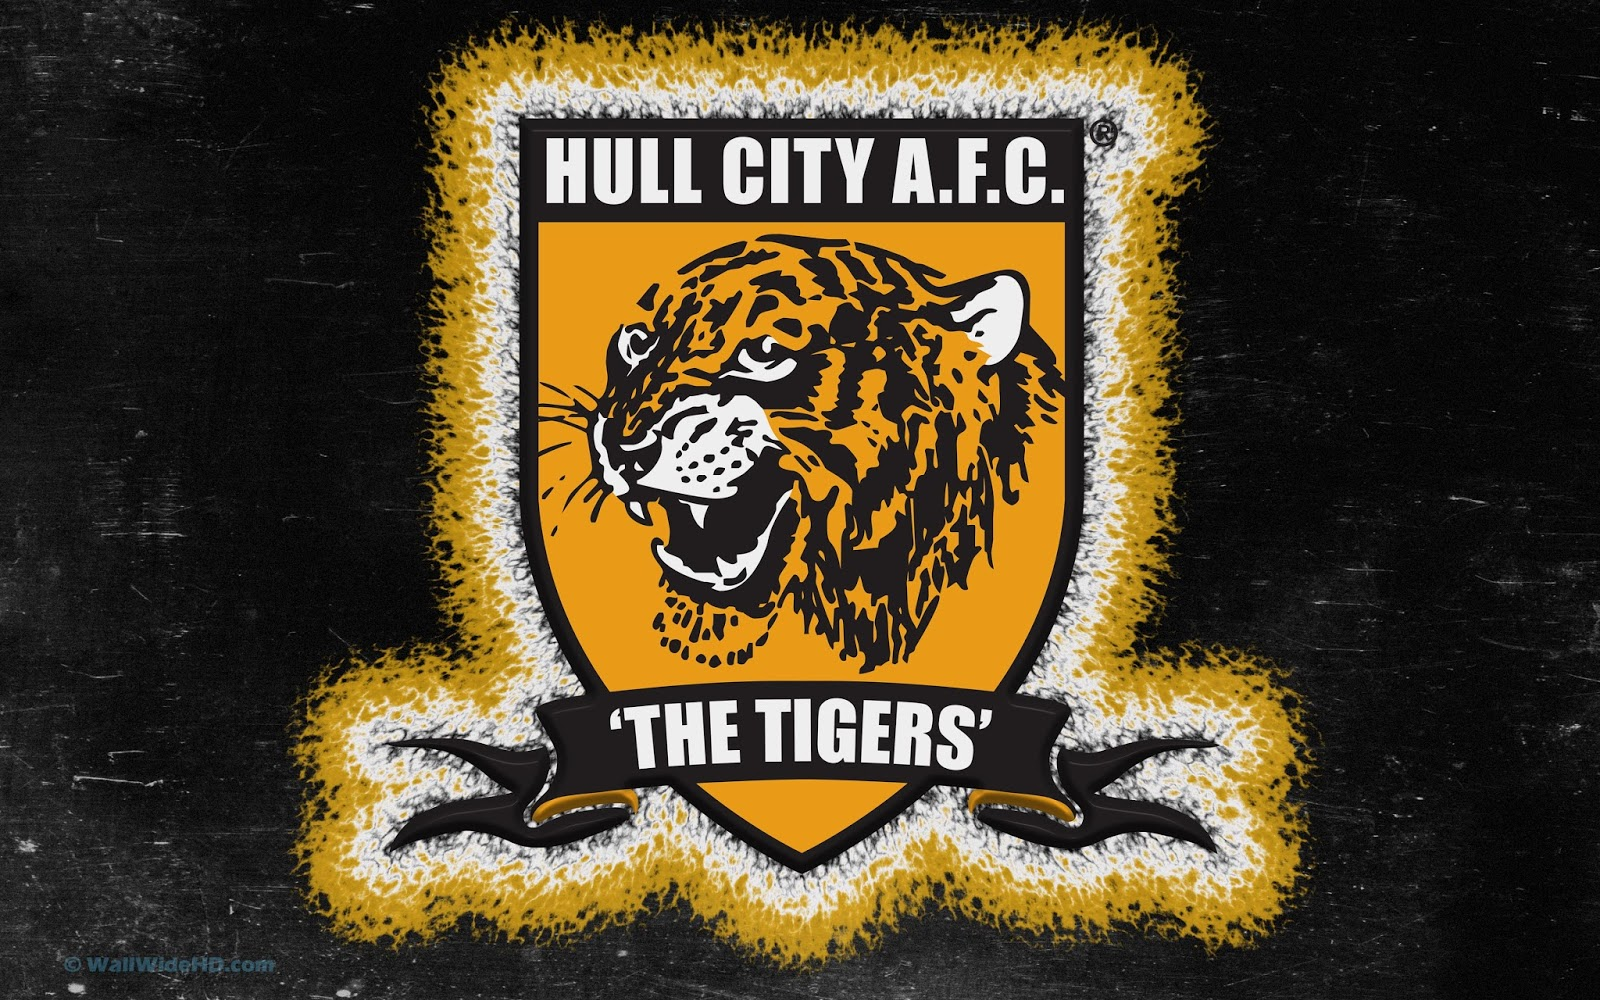 World Cup: Hull City FC Wallpapers